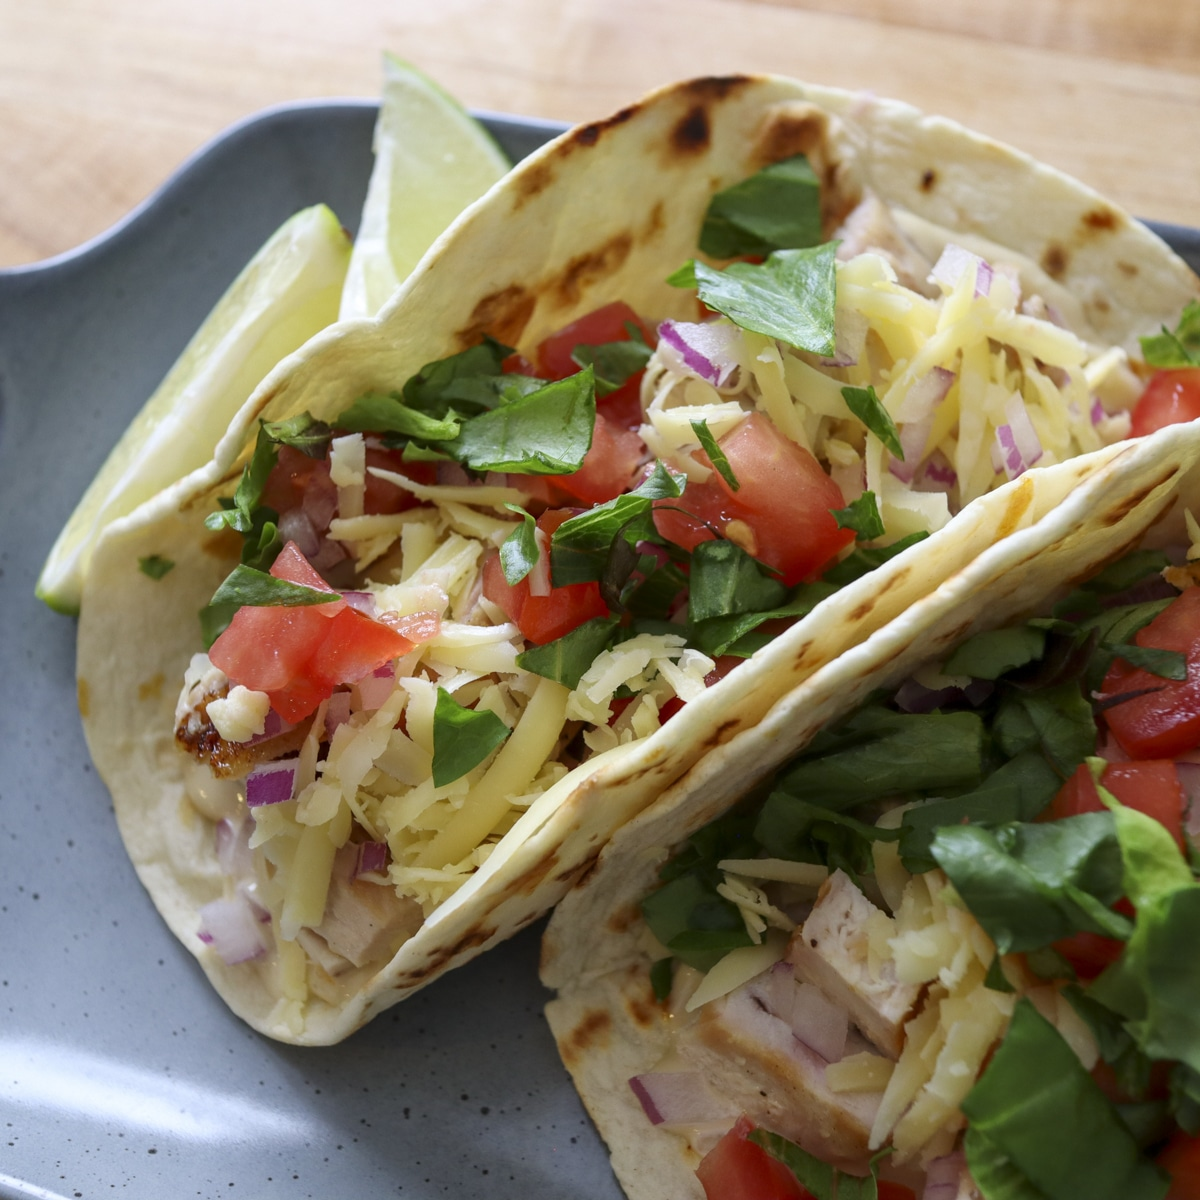 grilled chicken tacos on a plate